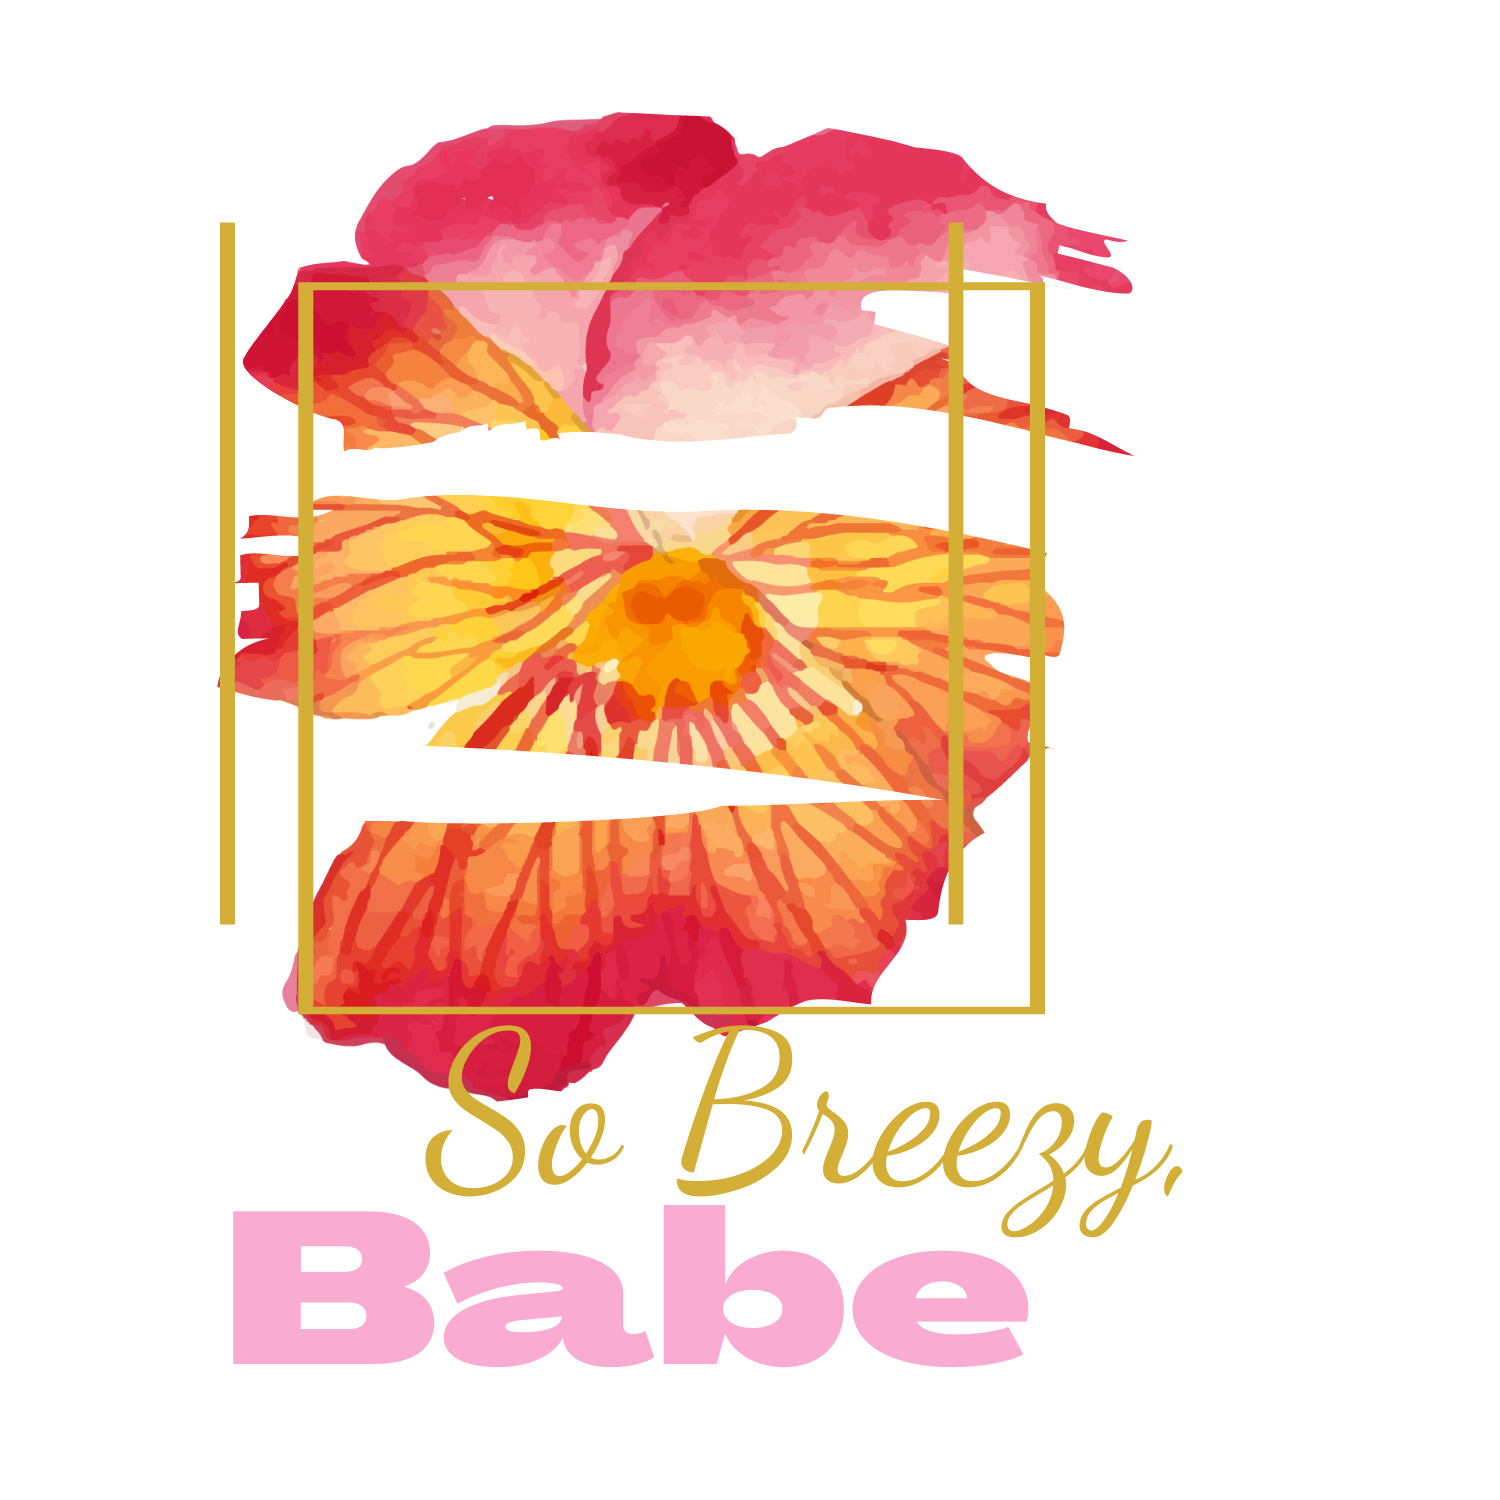 So Breezy Babe Partners with Major Health Brand QURE Energy for January 2021 And Slides into the January Edition of CosmoPress